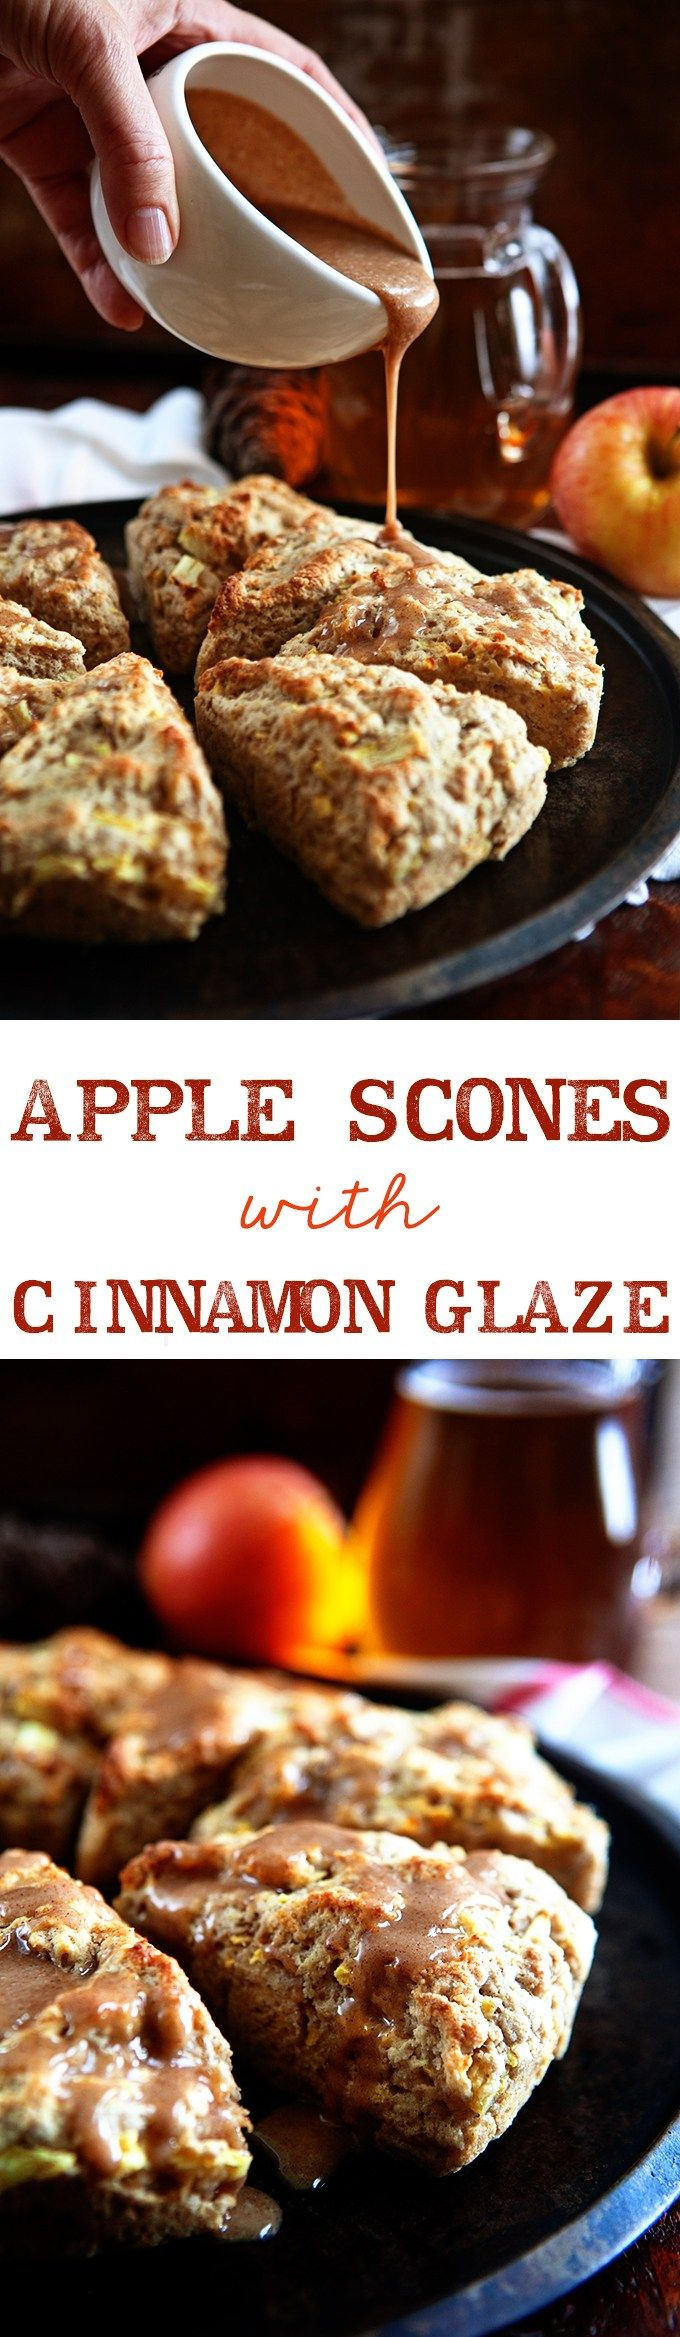 Apple Scones with Apple Cider Cinnamon Glaze from @somethewiser #autumnseason